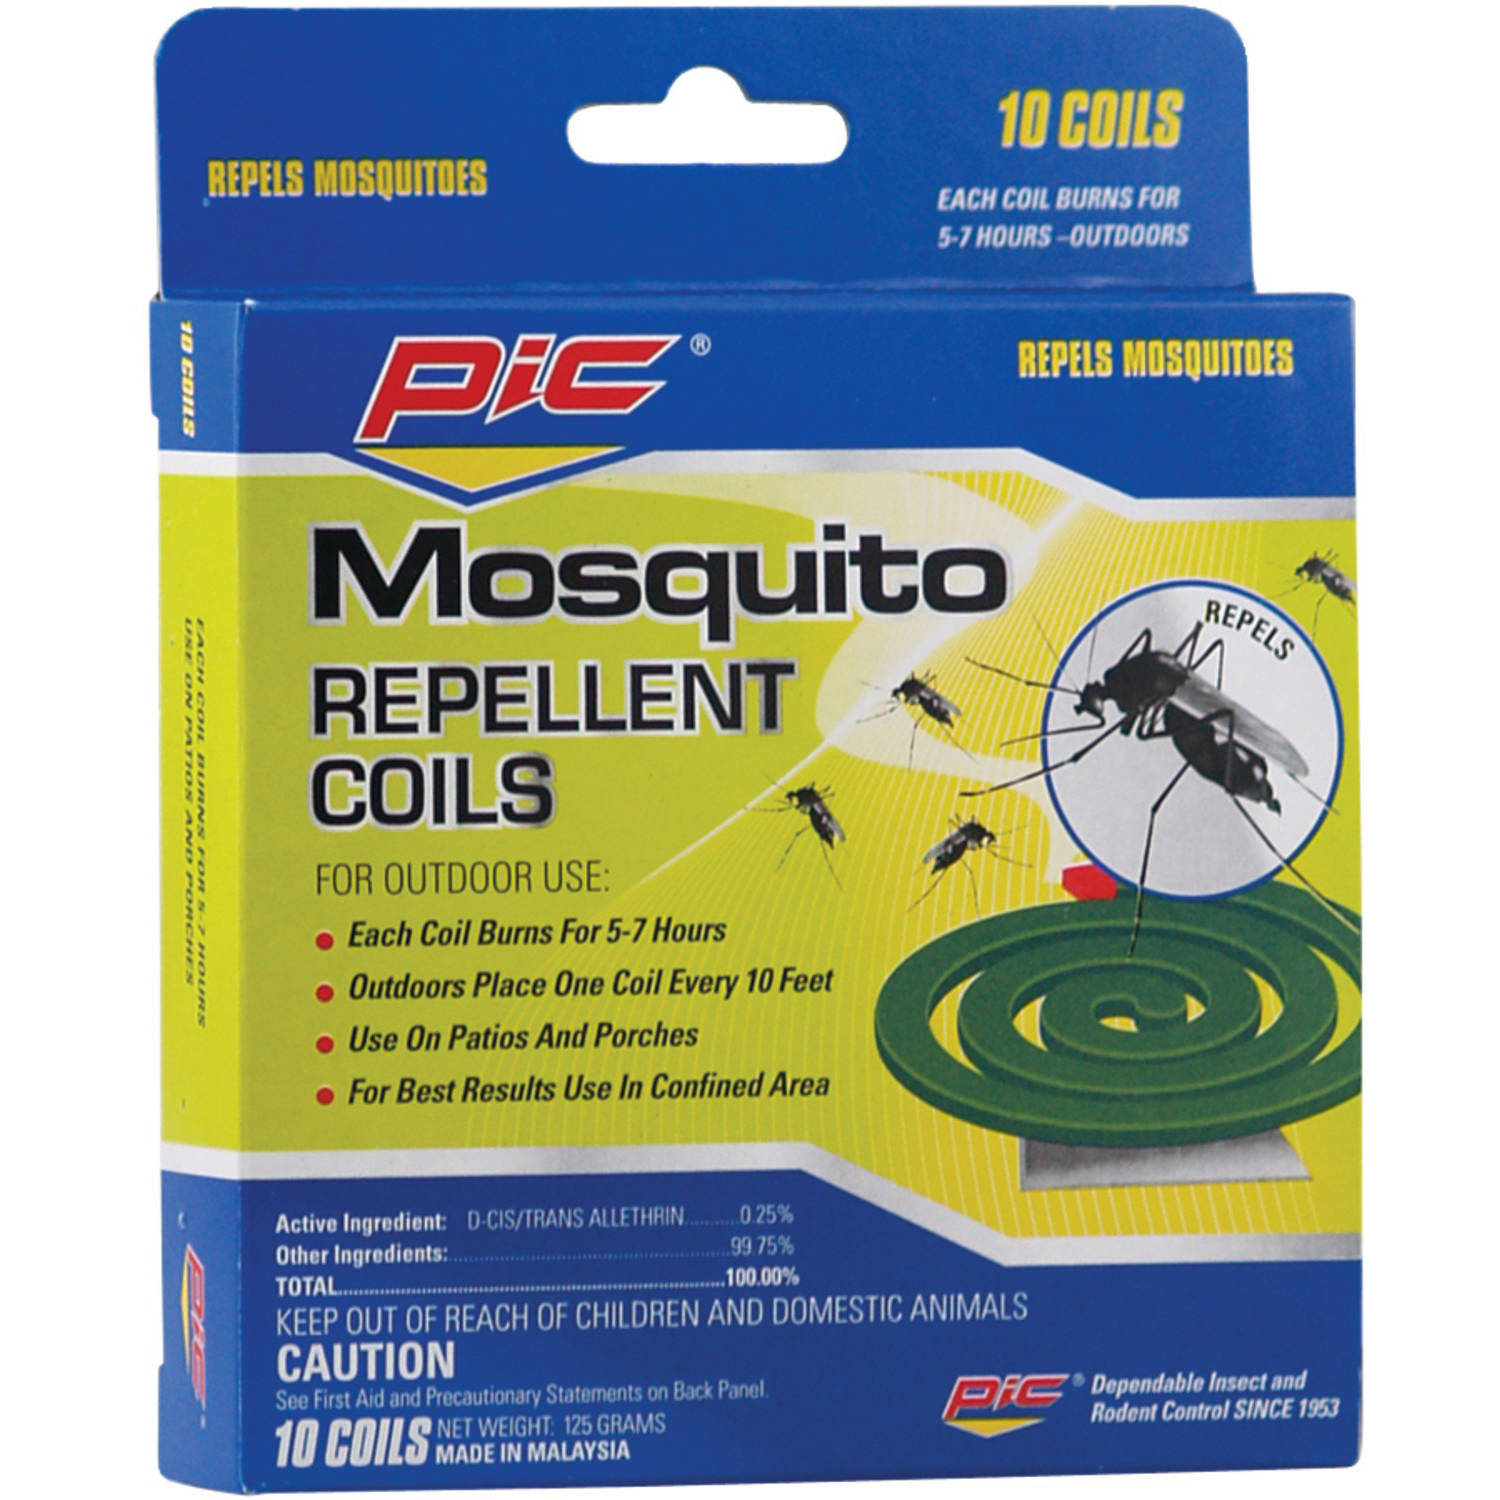 Pic Mosquito Repellent Coils, 10 Pack